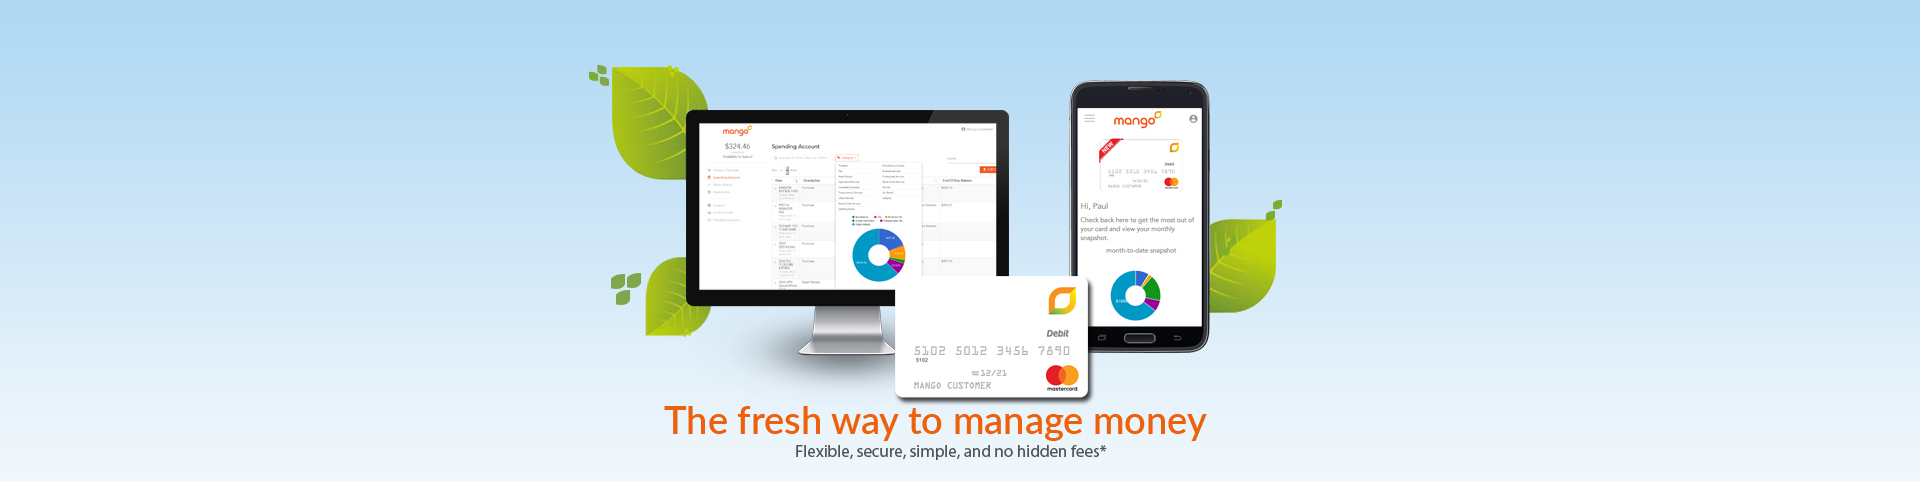 The-fresh-way-to-manage-money-2